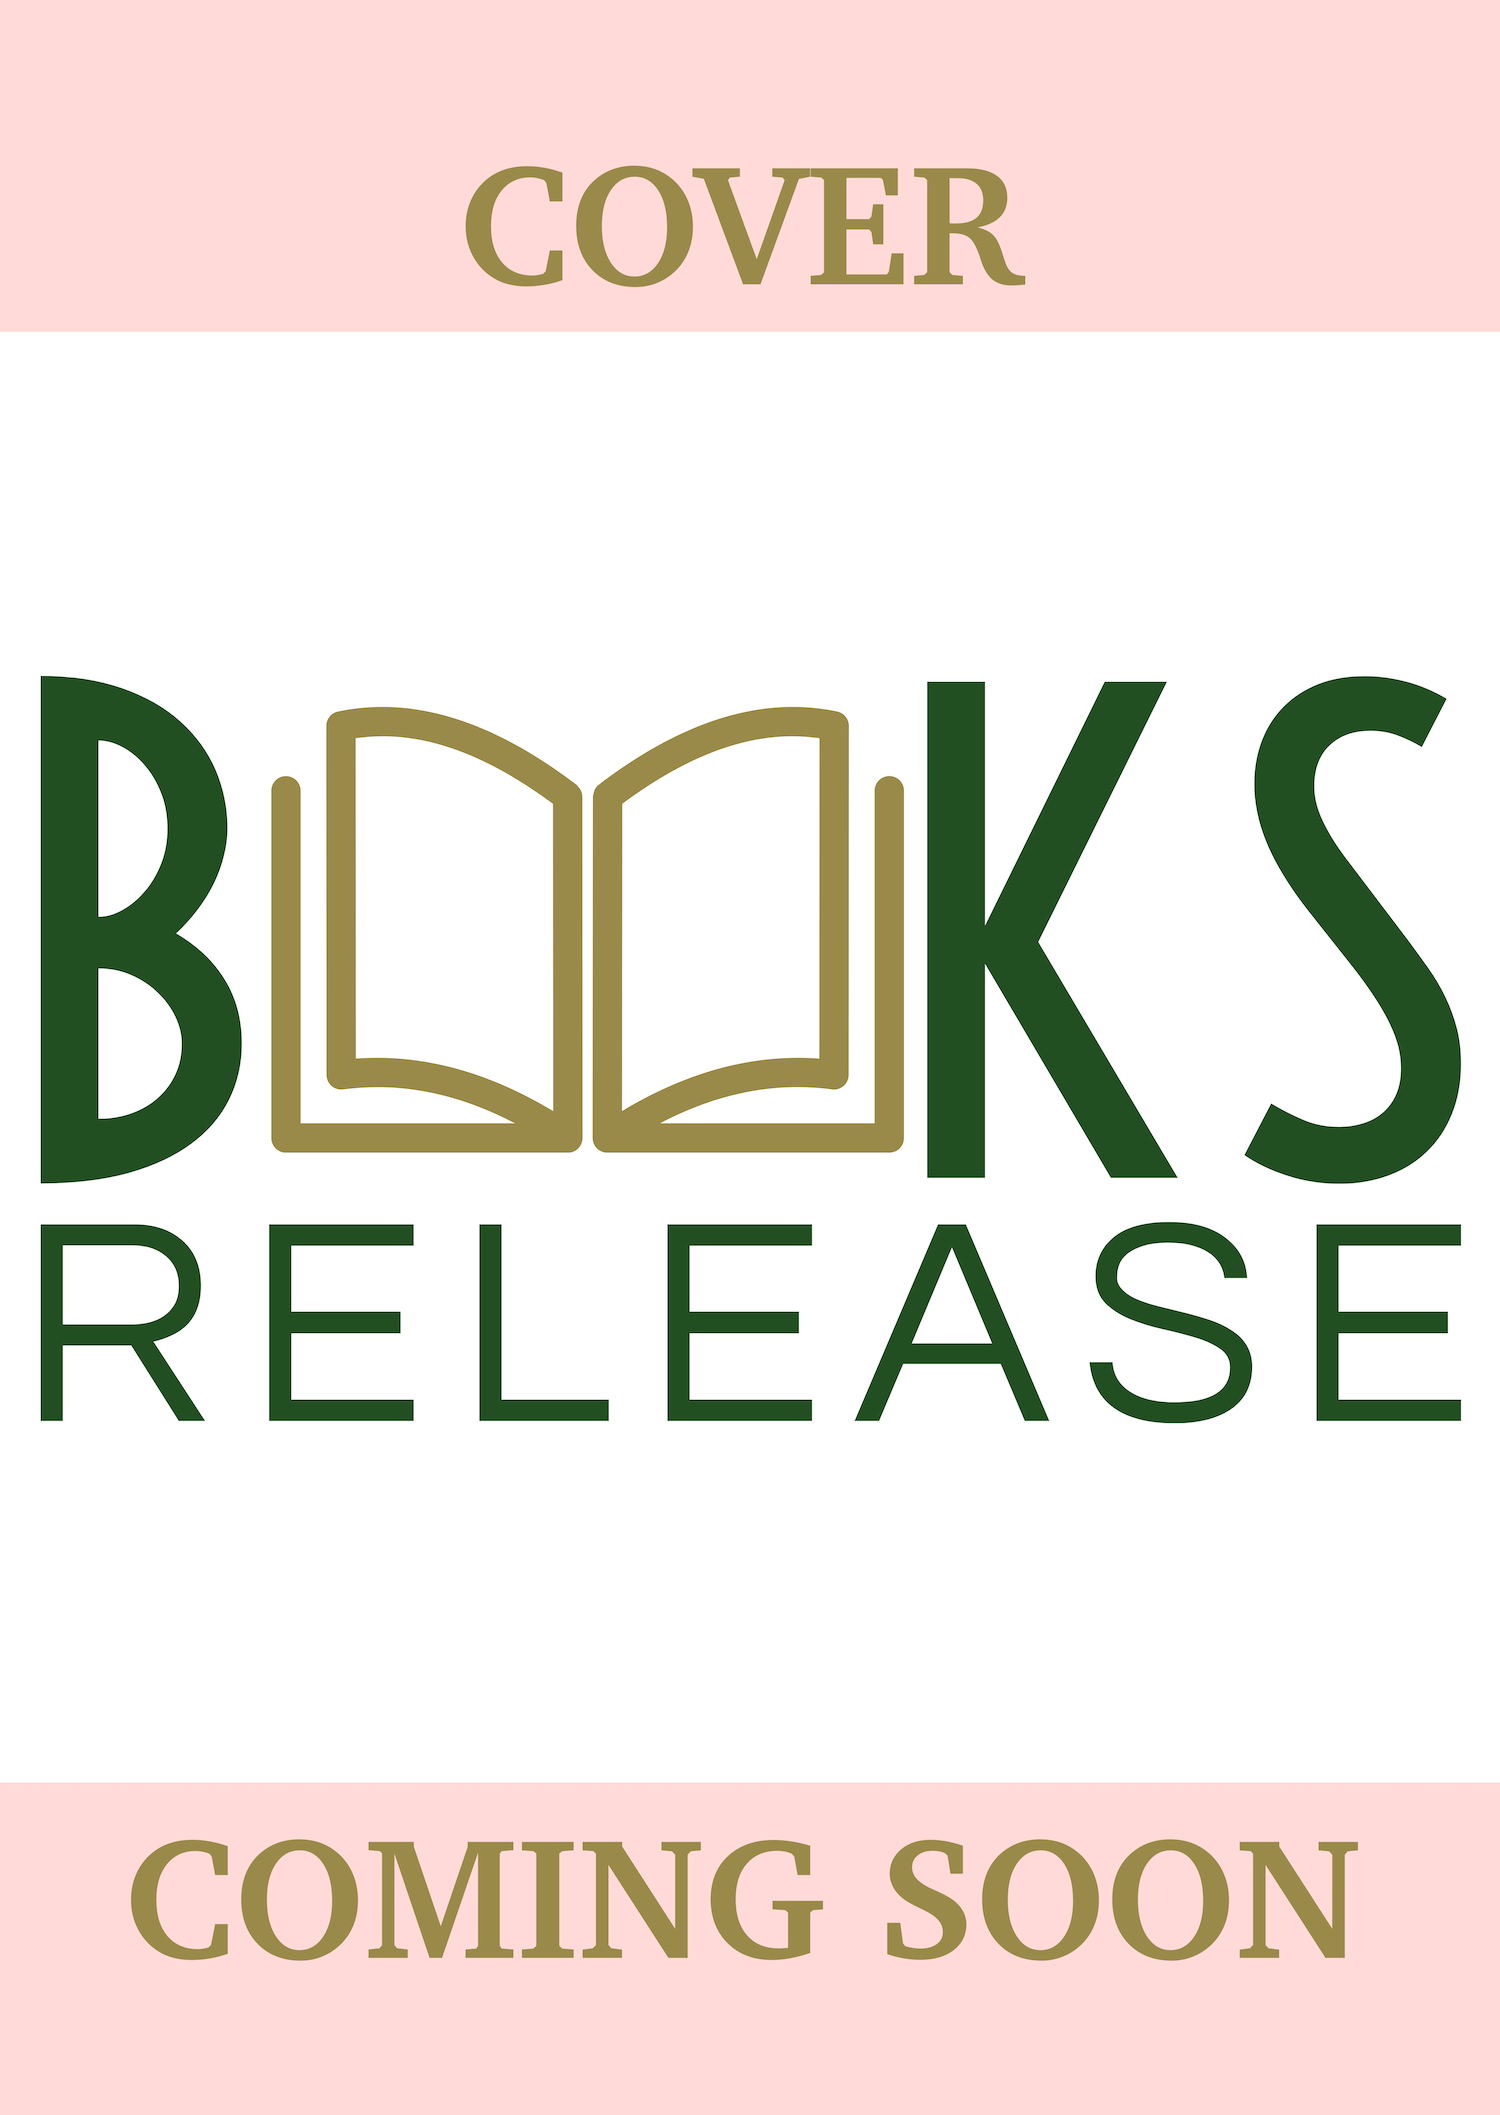 A Violent Woman Release Date? Ayana Mathis 2021 New Book